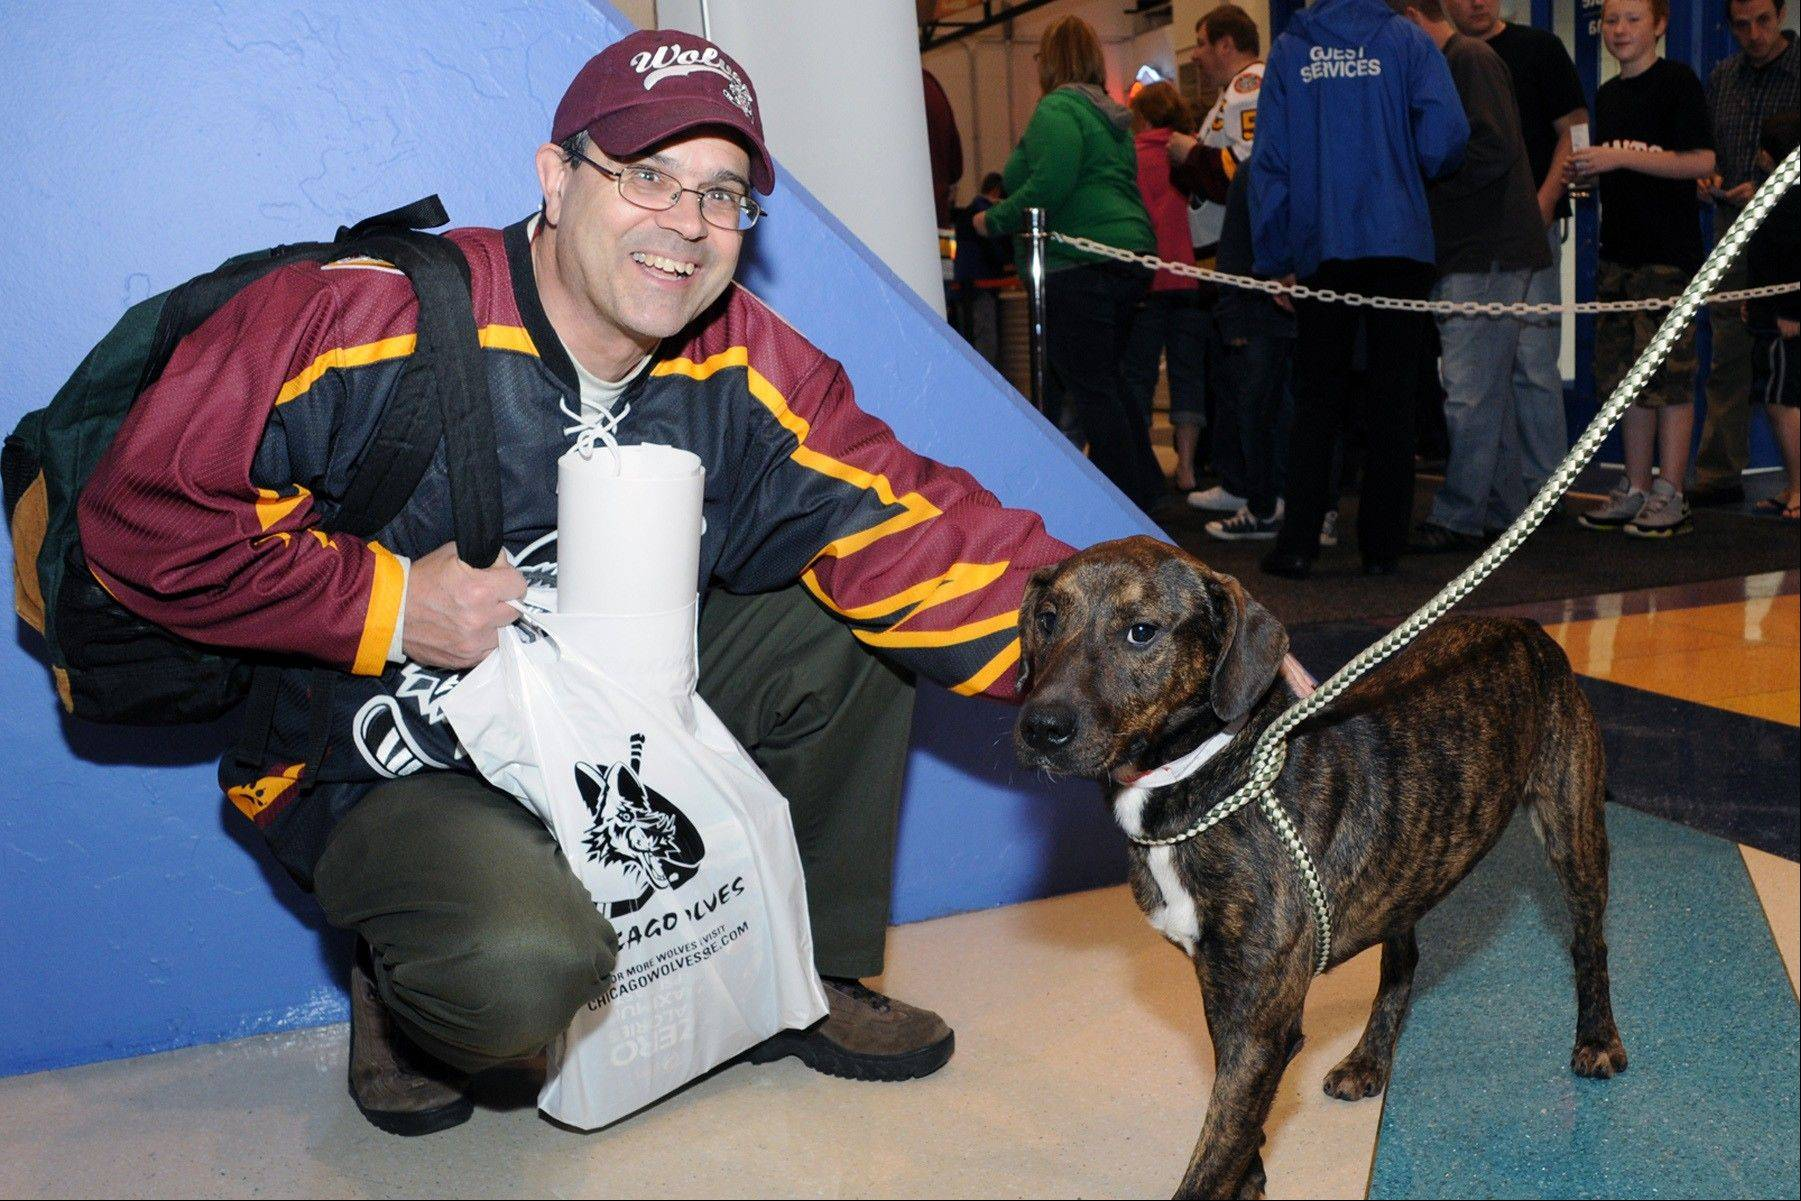 The Wolves will host their annual Adopt-A-Dog promotion on Saturday night, and if 19 fans sign up for the program they will hit the 1,000 mark. The Wolves began supporting the adoption program in 2001.